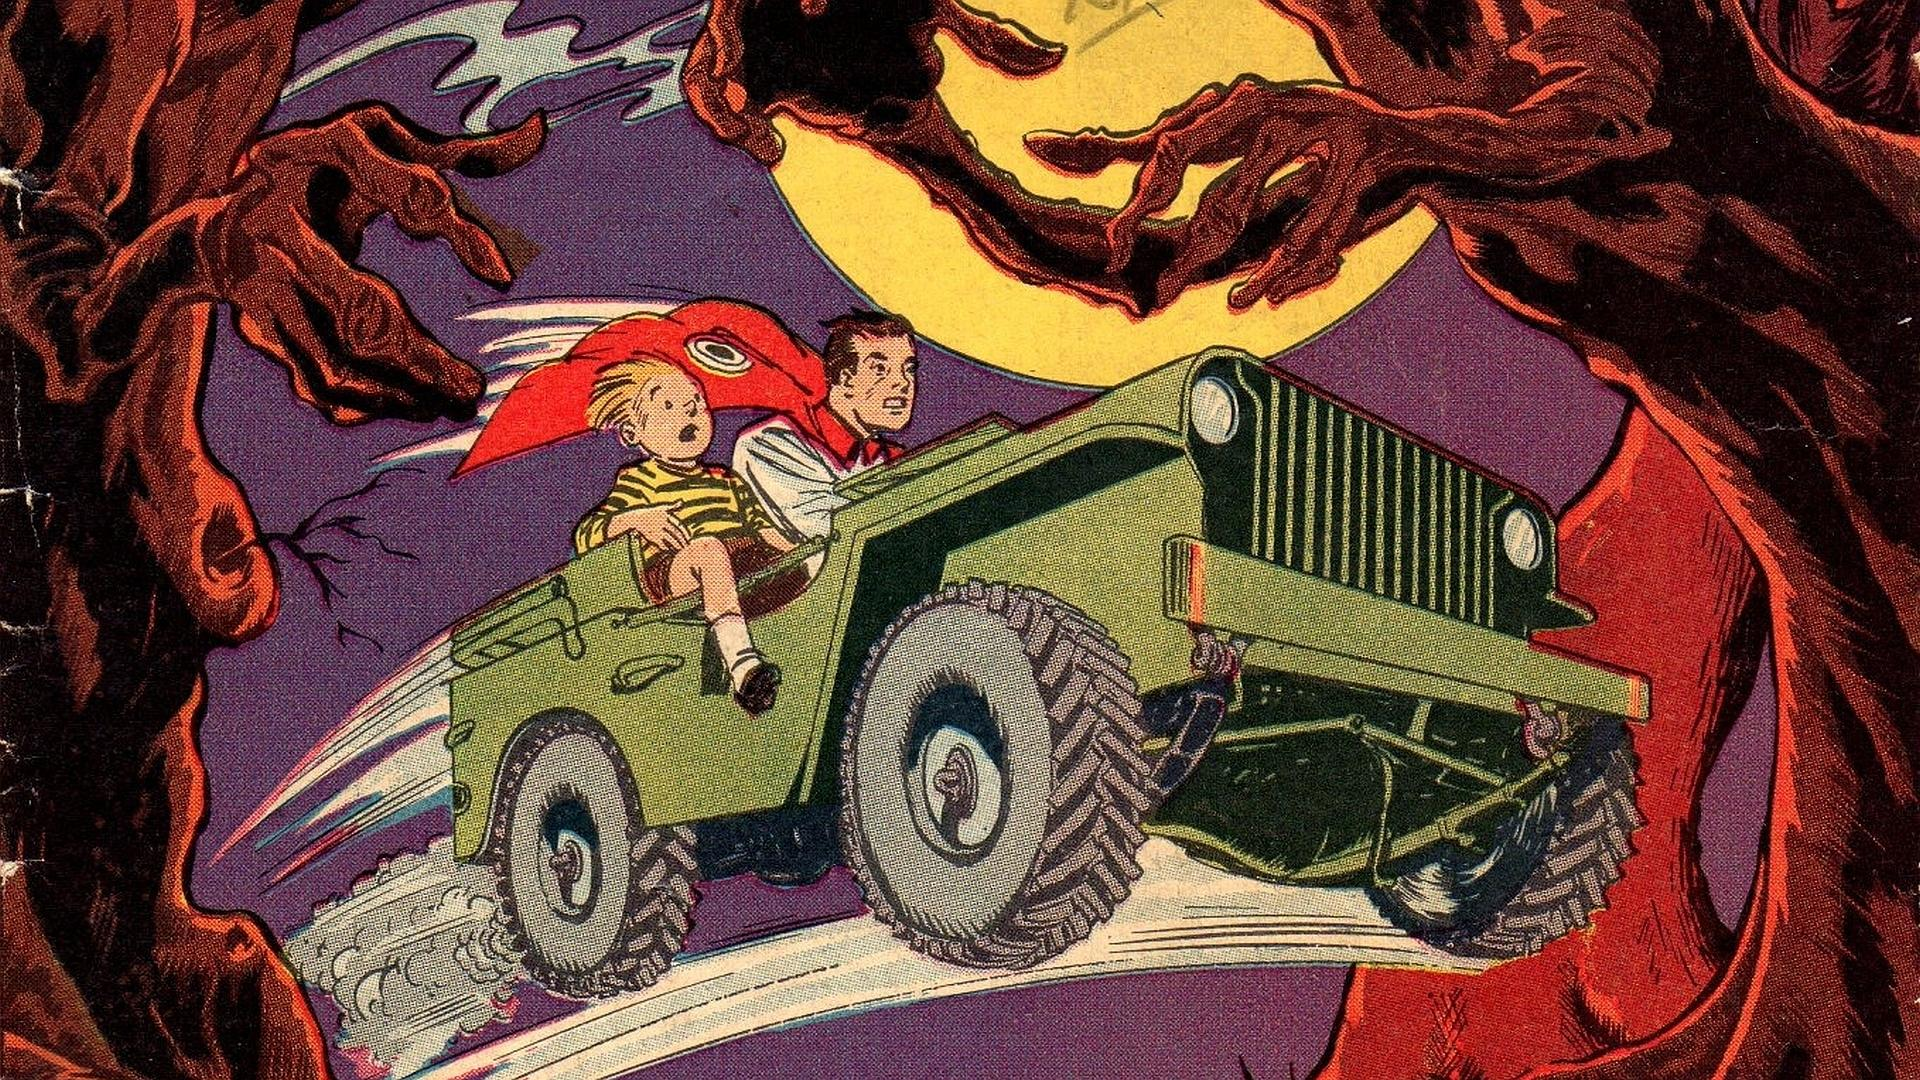 Jeep Comics at 640 x 960 iPhone 4 size wallpapers HD quality